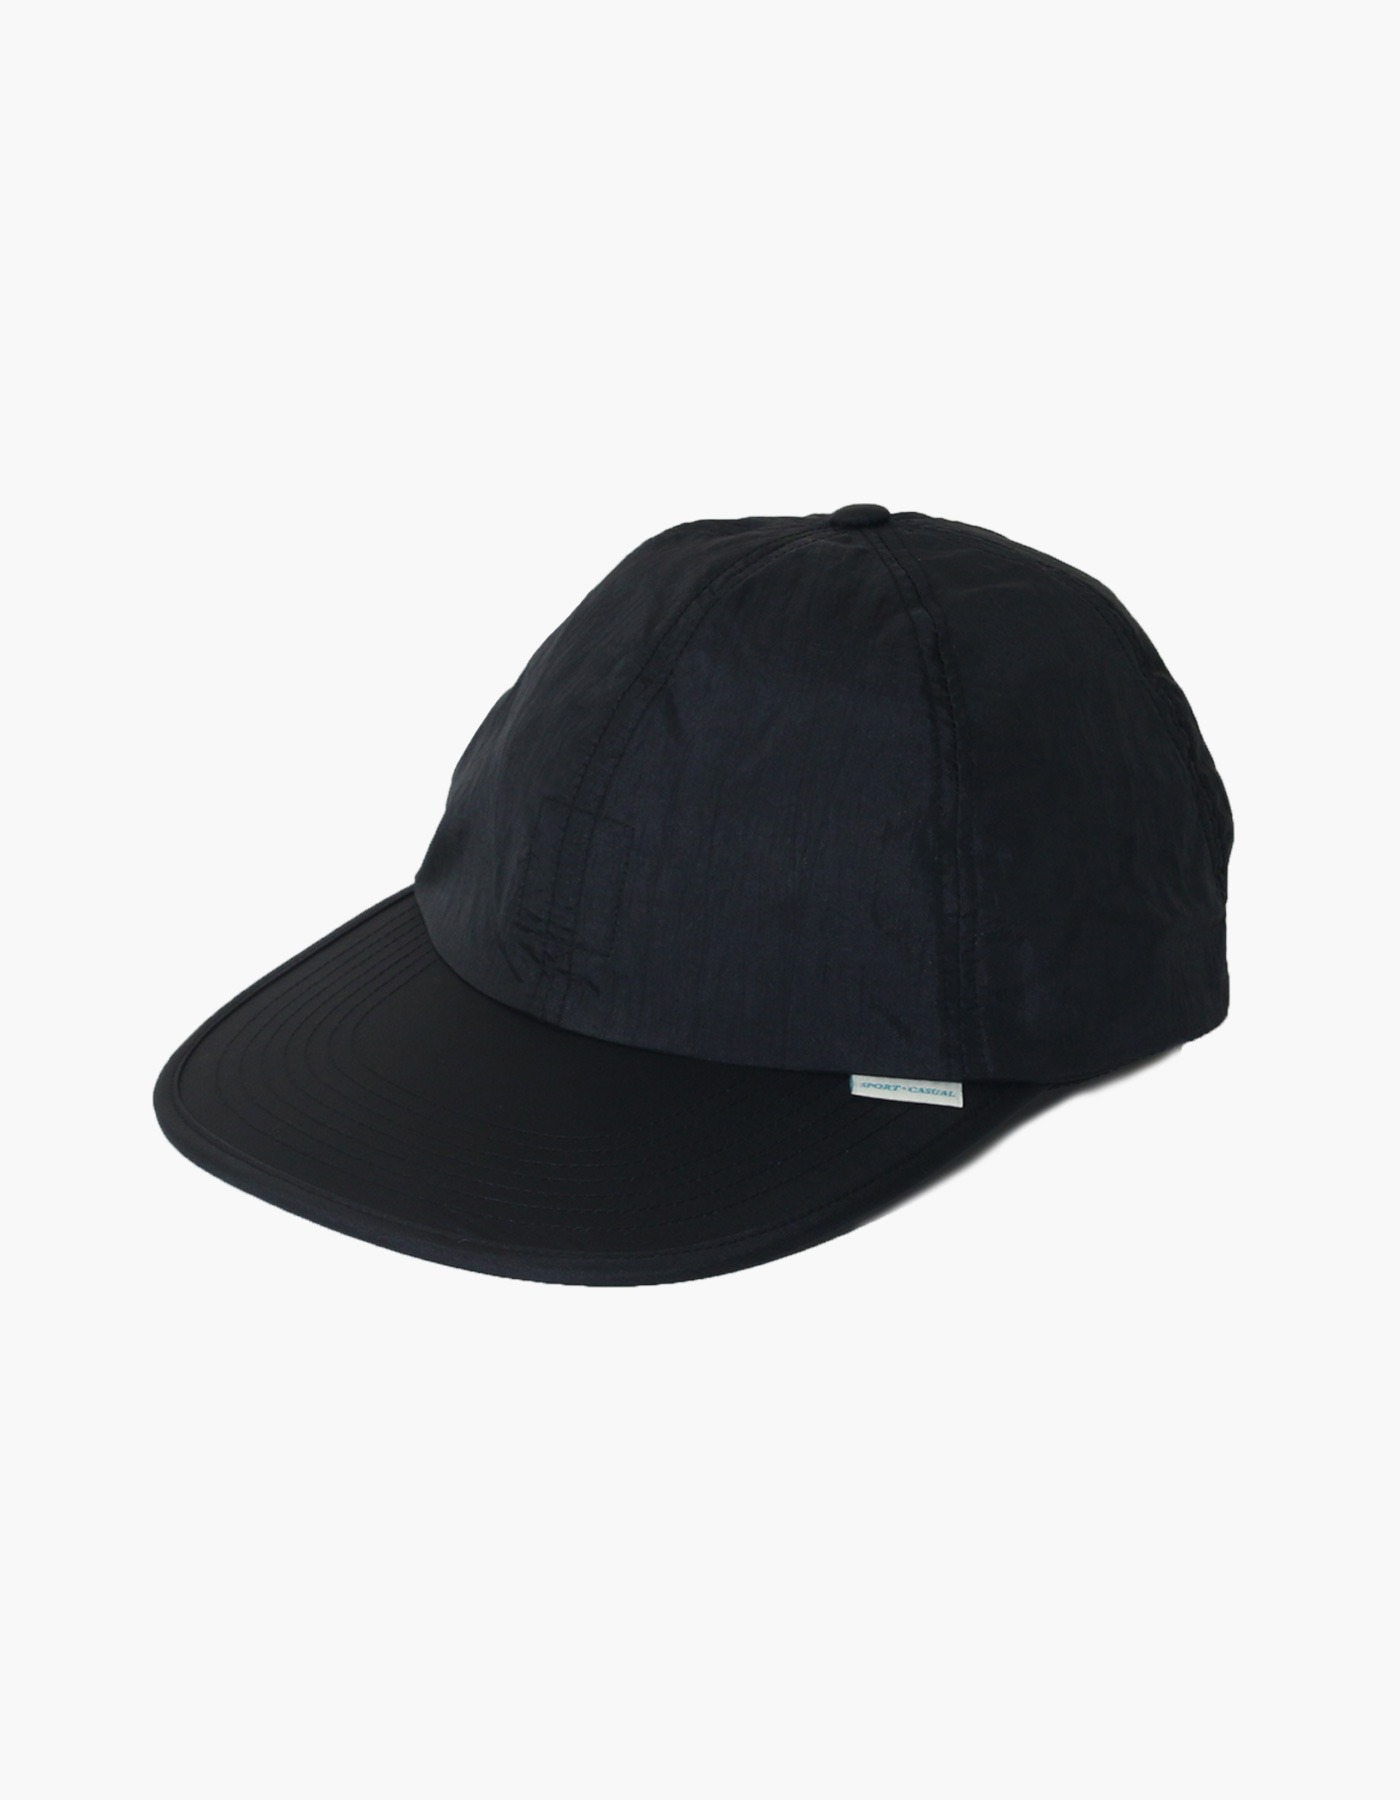 NYLON DIAMOND WASHER 6 PANEL CAP / BLACK